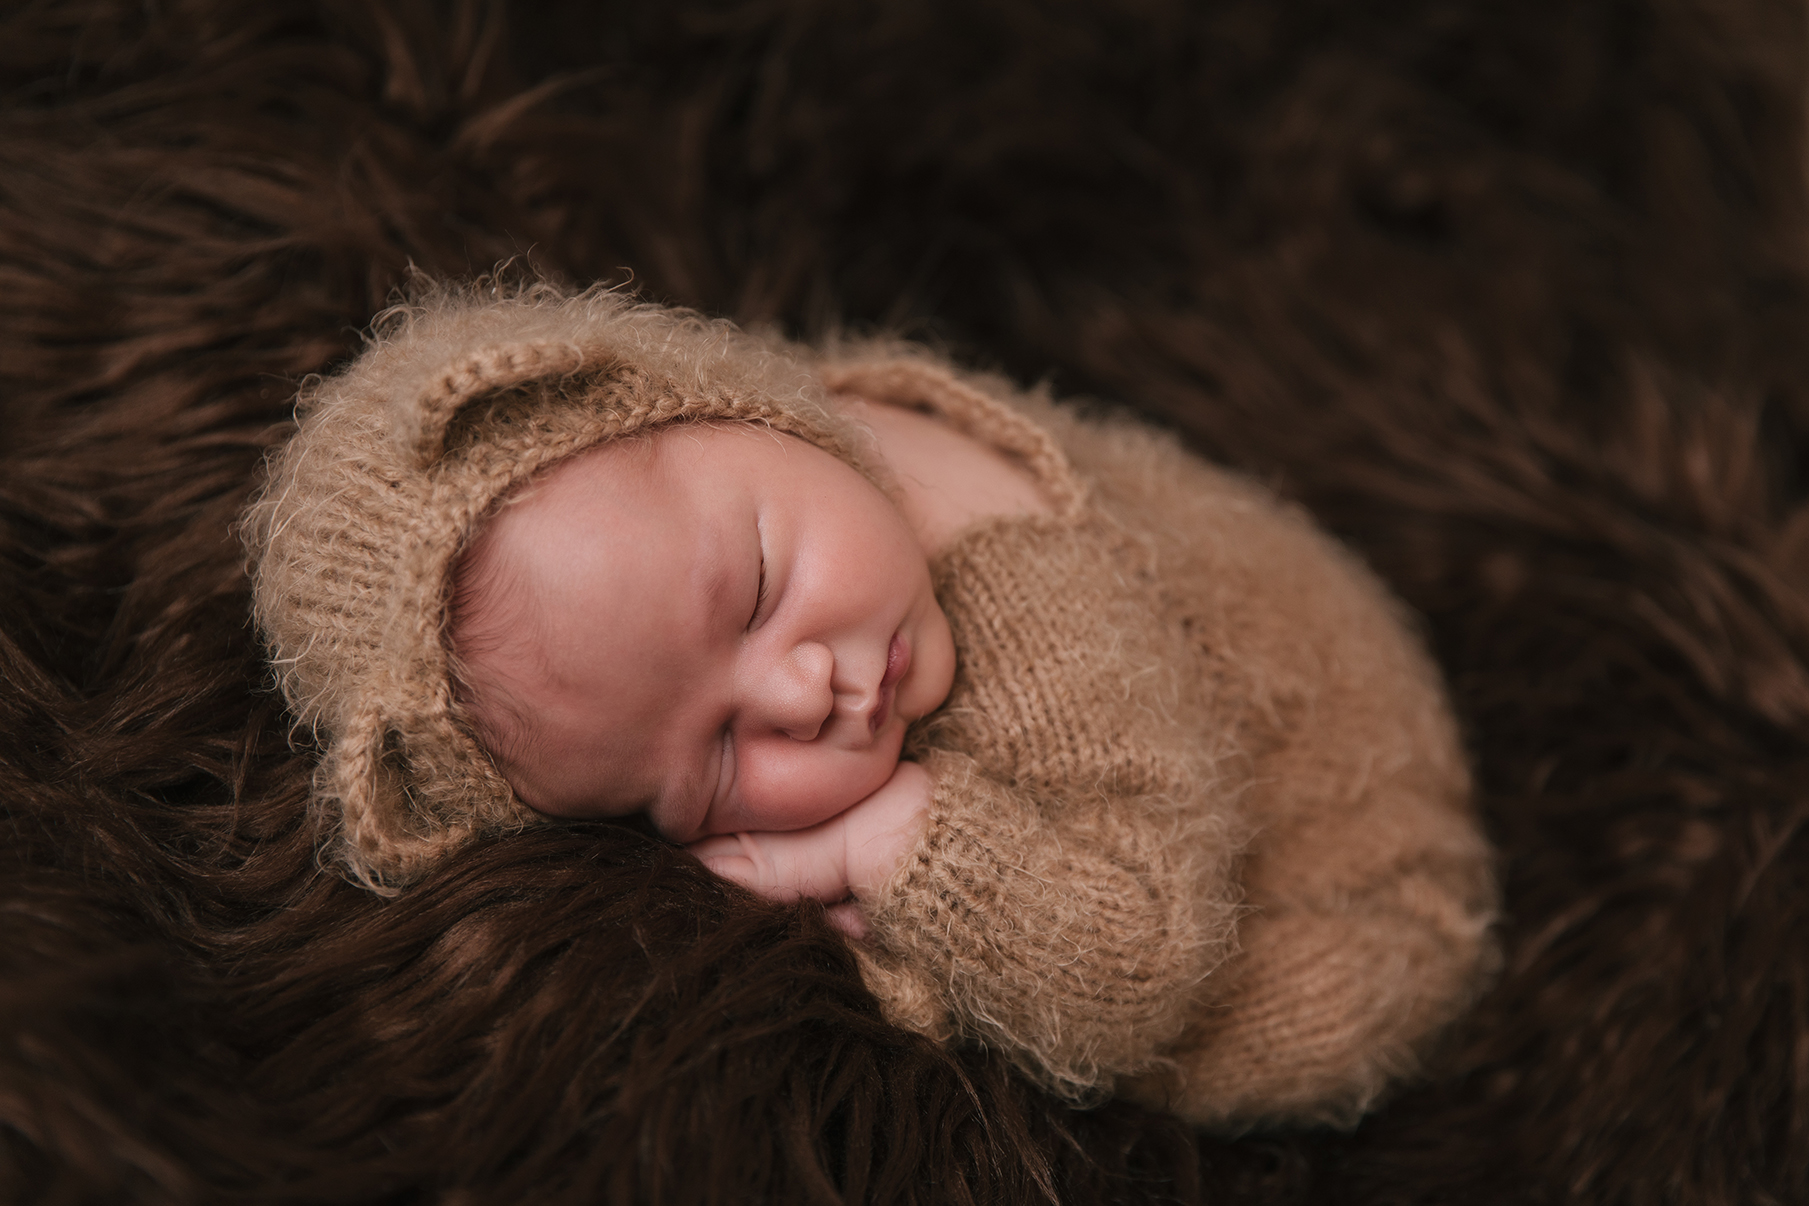 Kinsman_Ohio_Baby_Boy_Taco_Pose_Newborn_photography_by_Christie_Leigh_Photo_in_Cortland_Ohio-014.jpg